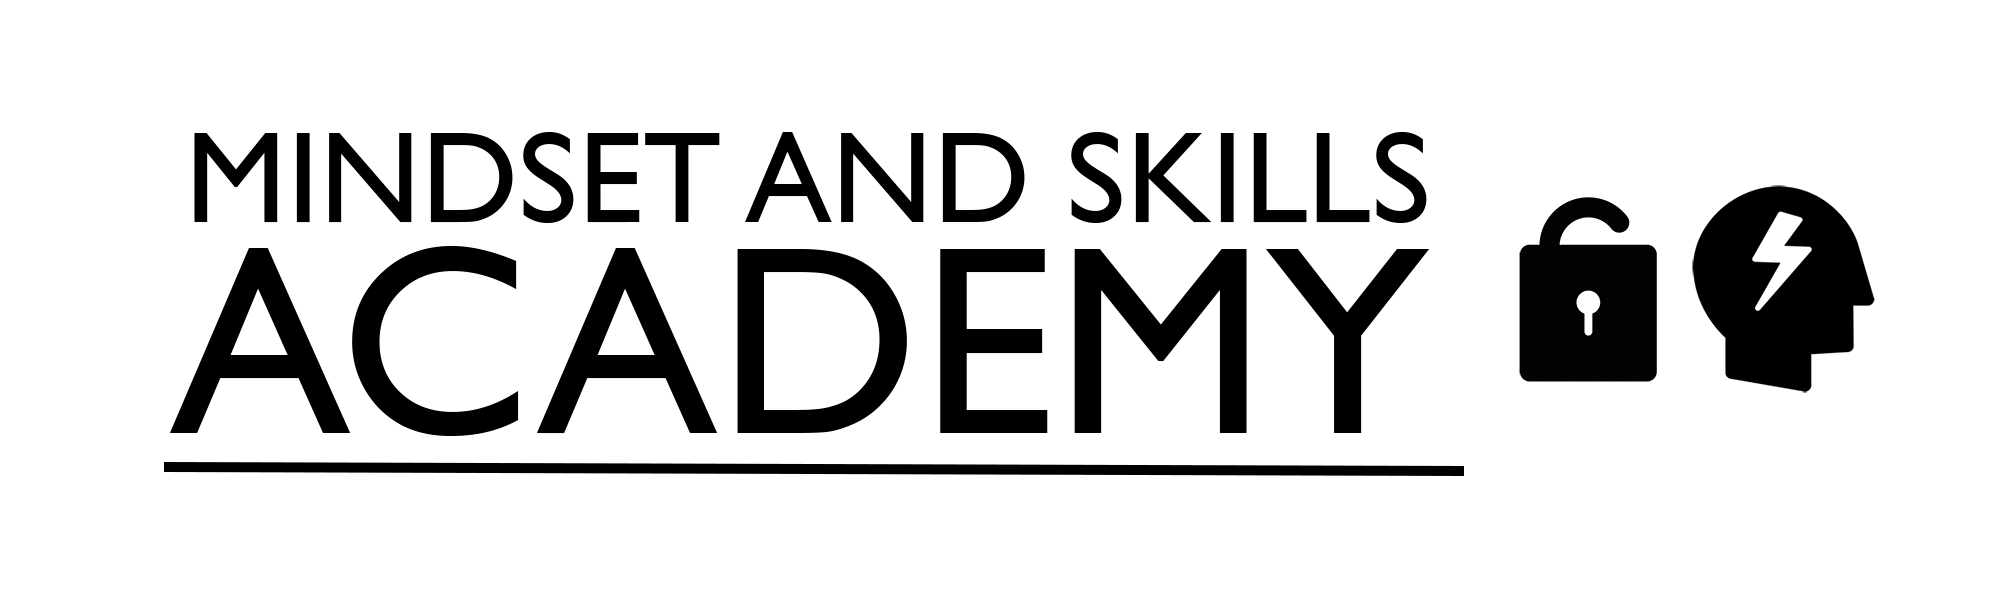 Mindset-and-skills-Logo-Trans1